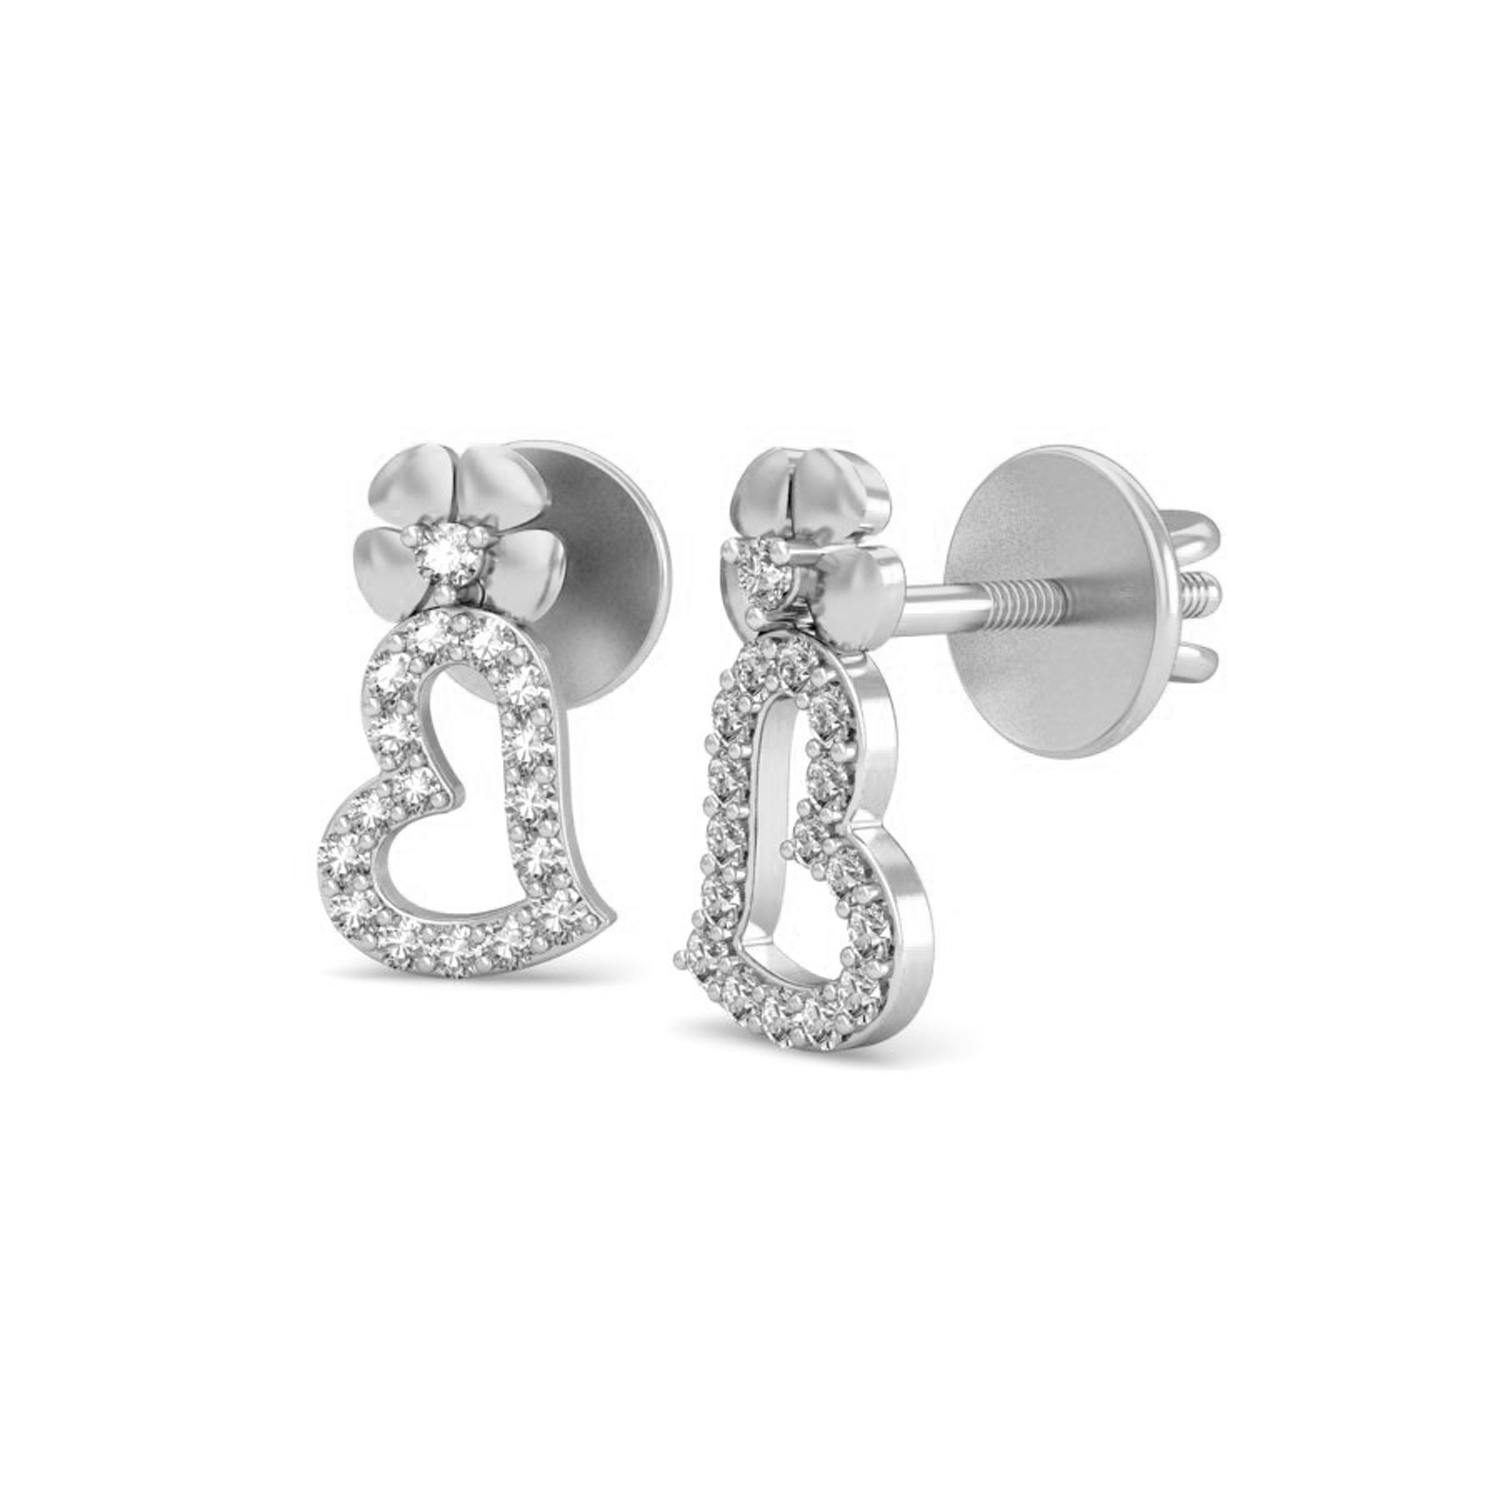 32a7b3d4f44 ... Heart Shaped Diamond Earrings 0.23 ct Natural Certified Solid Gold  Valentine Gift